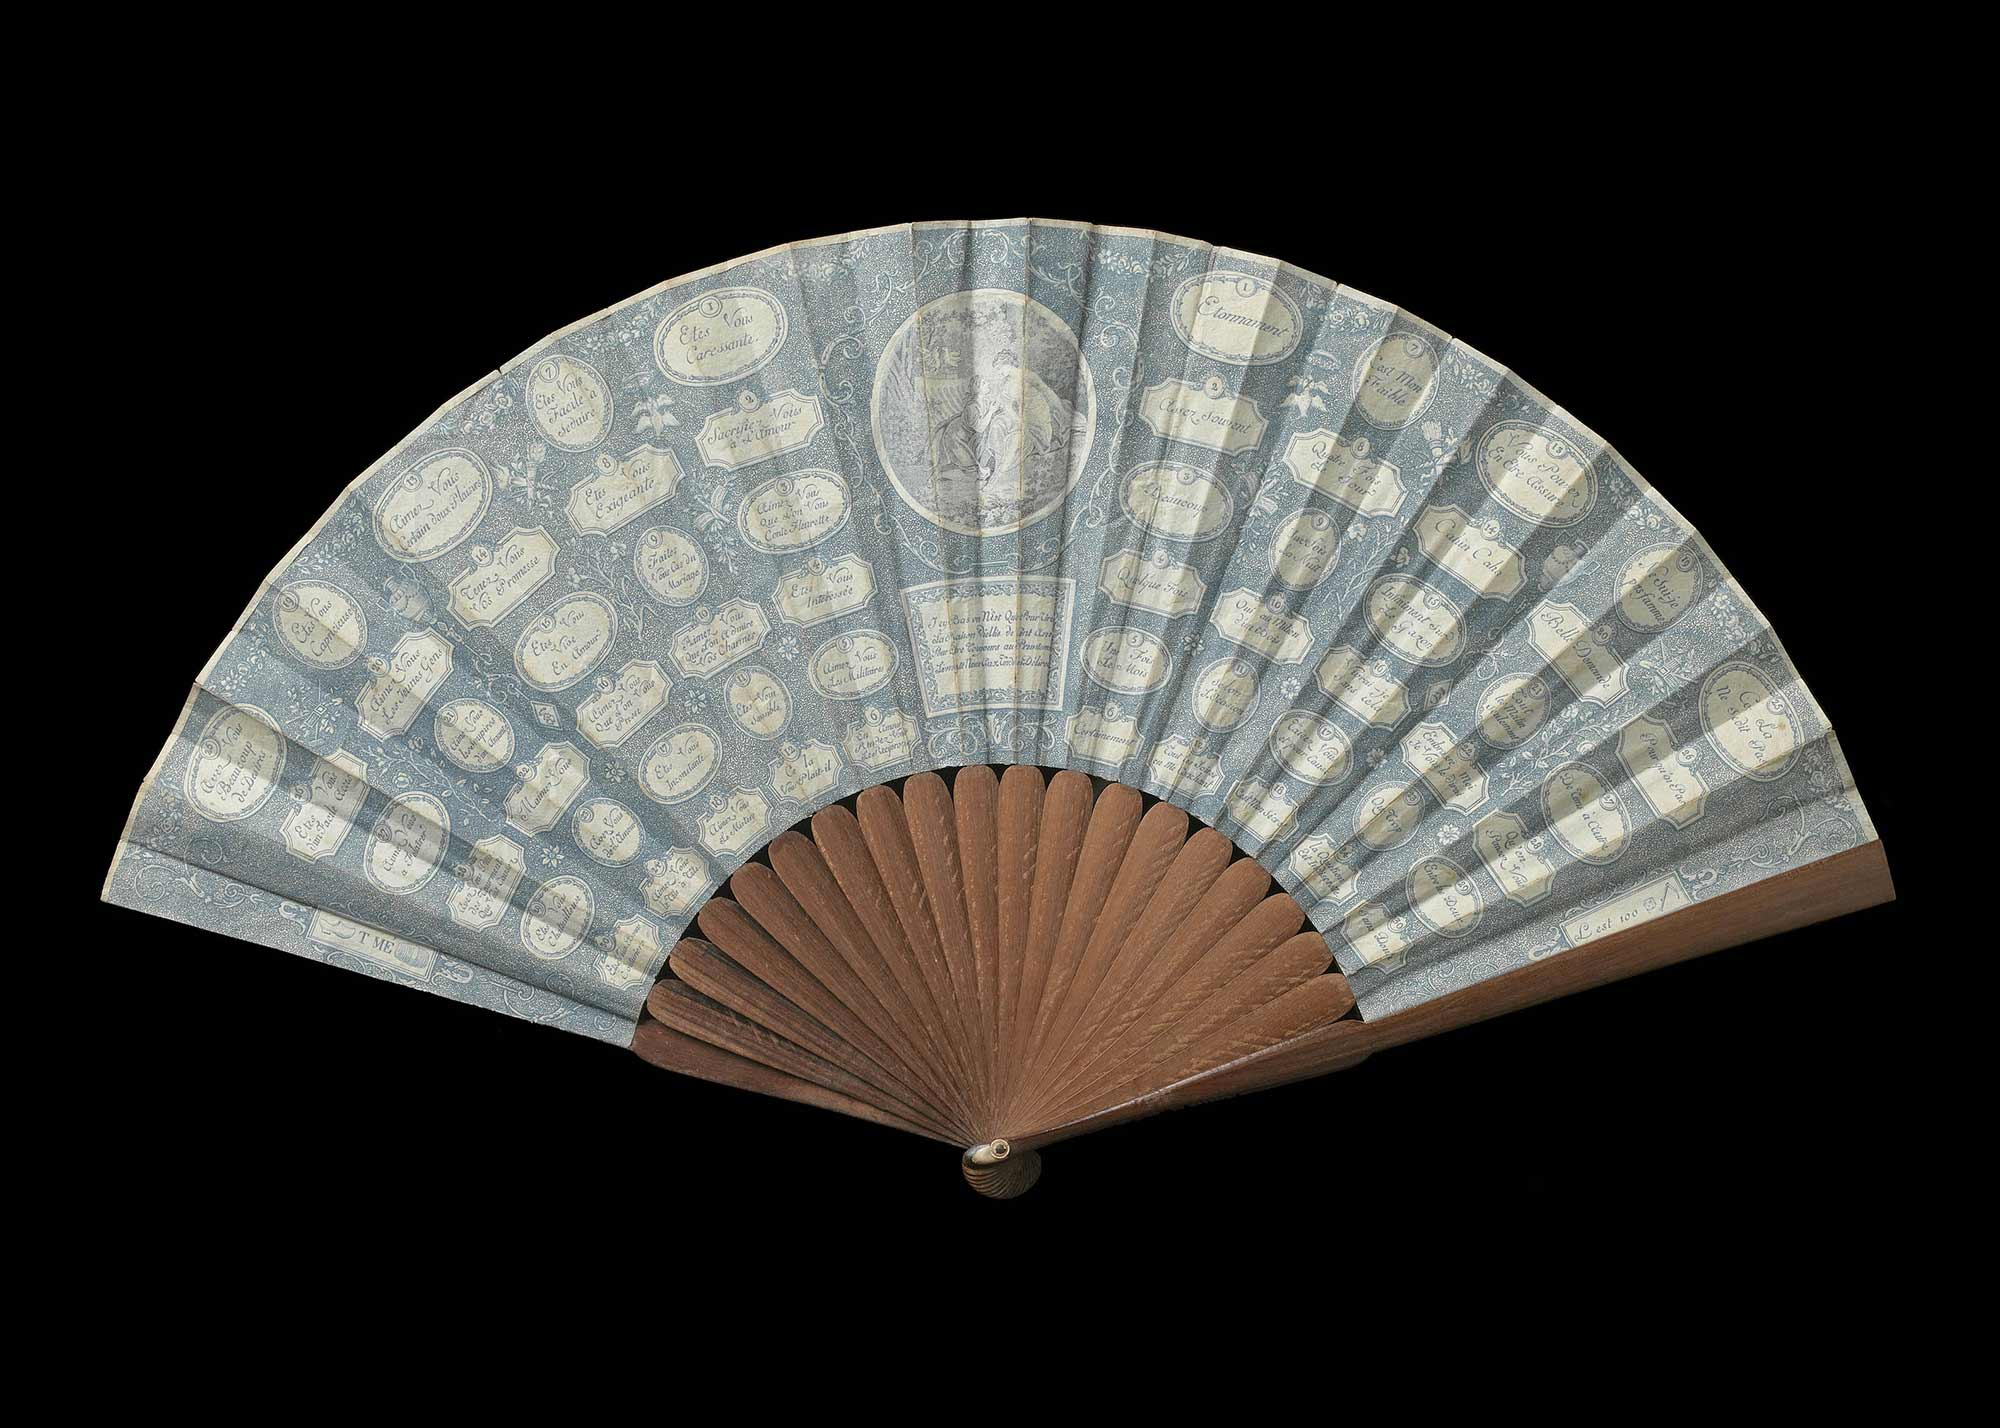 """Amorous question and answer game"" fan, ca. 1795"